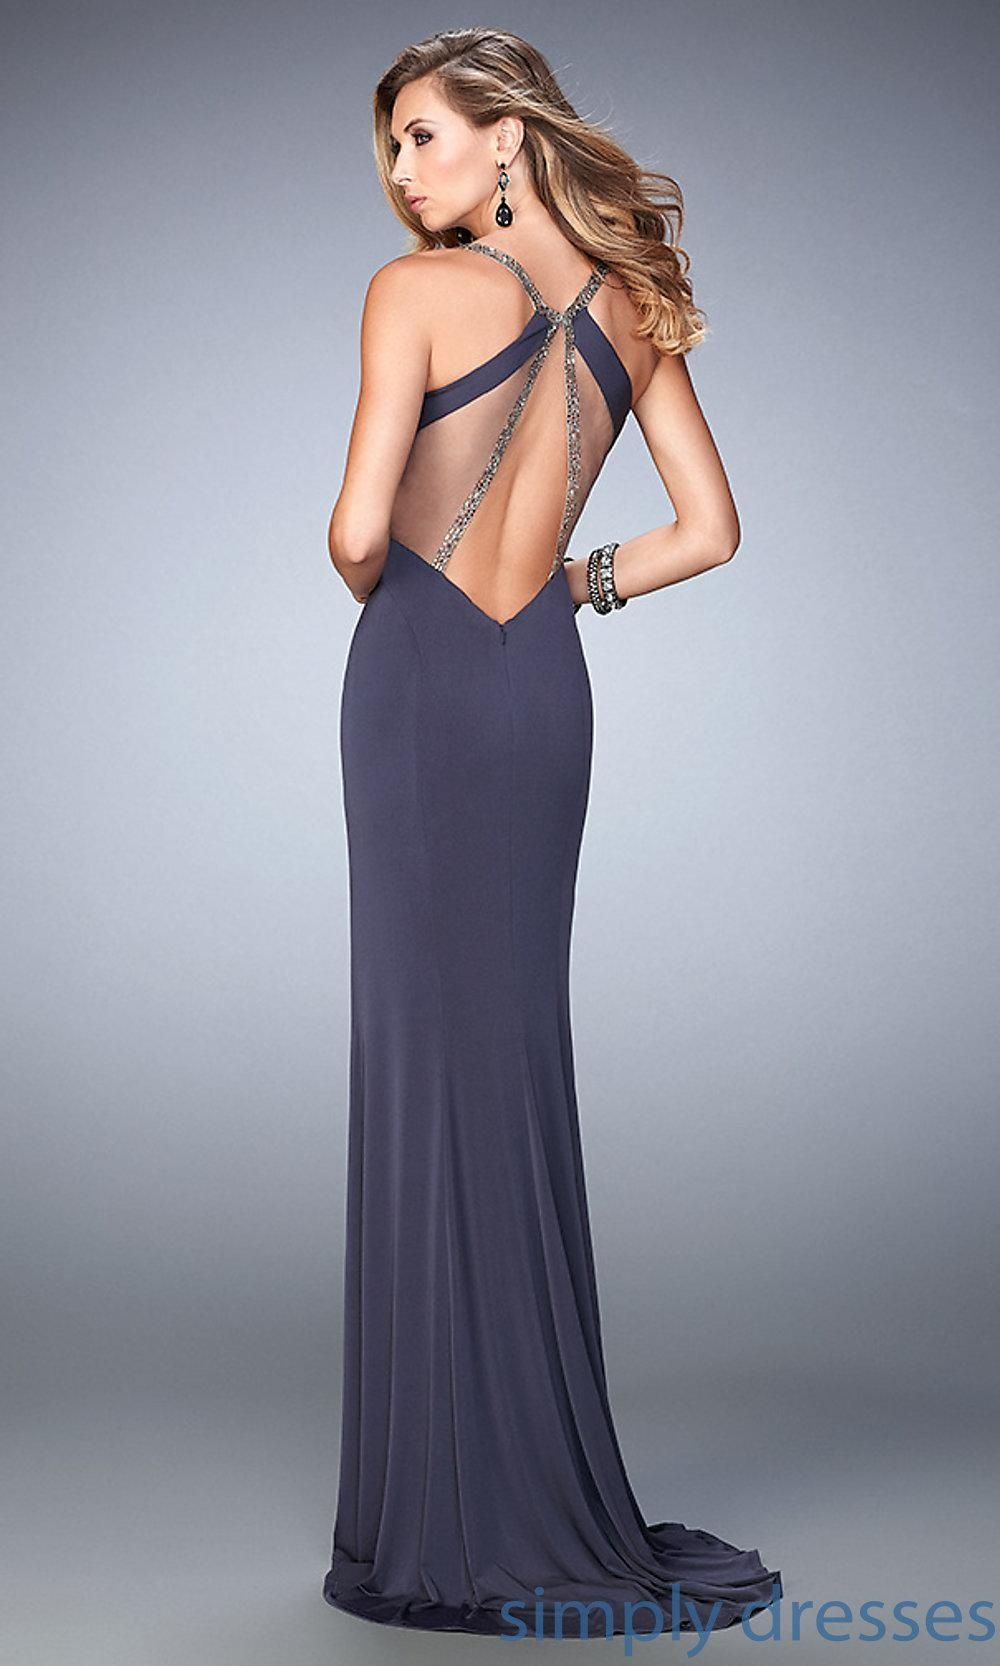 2019 year for girls- Dress Prom trends: information for you pictures